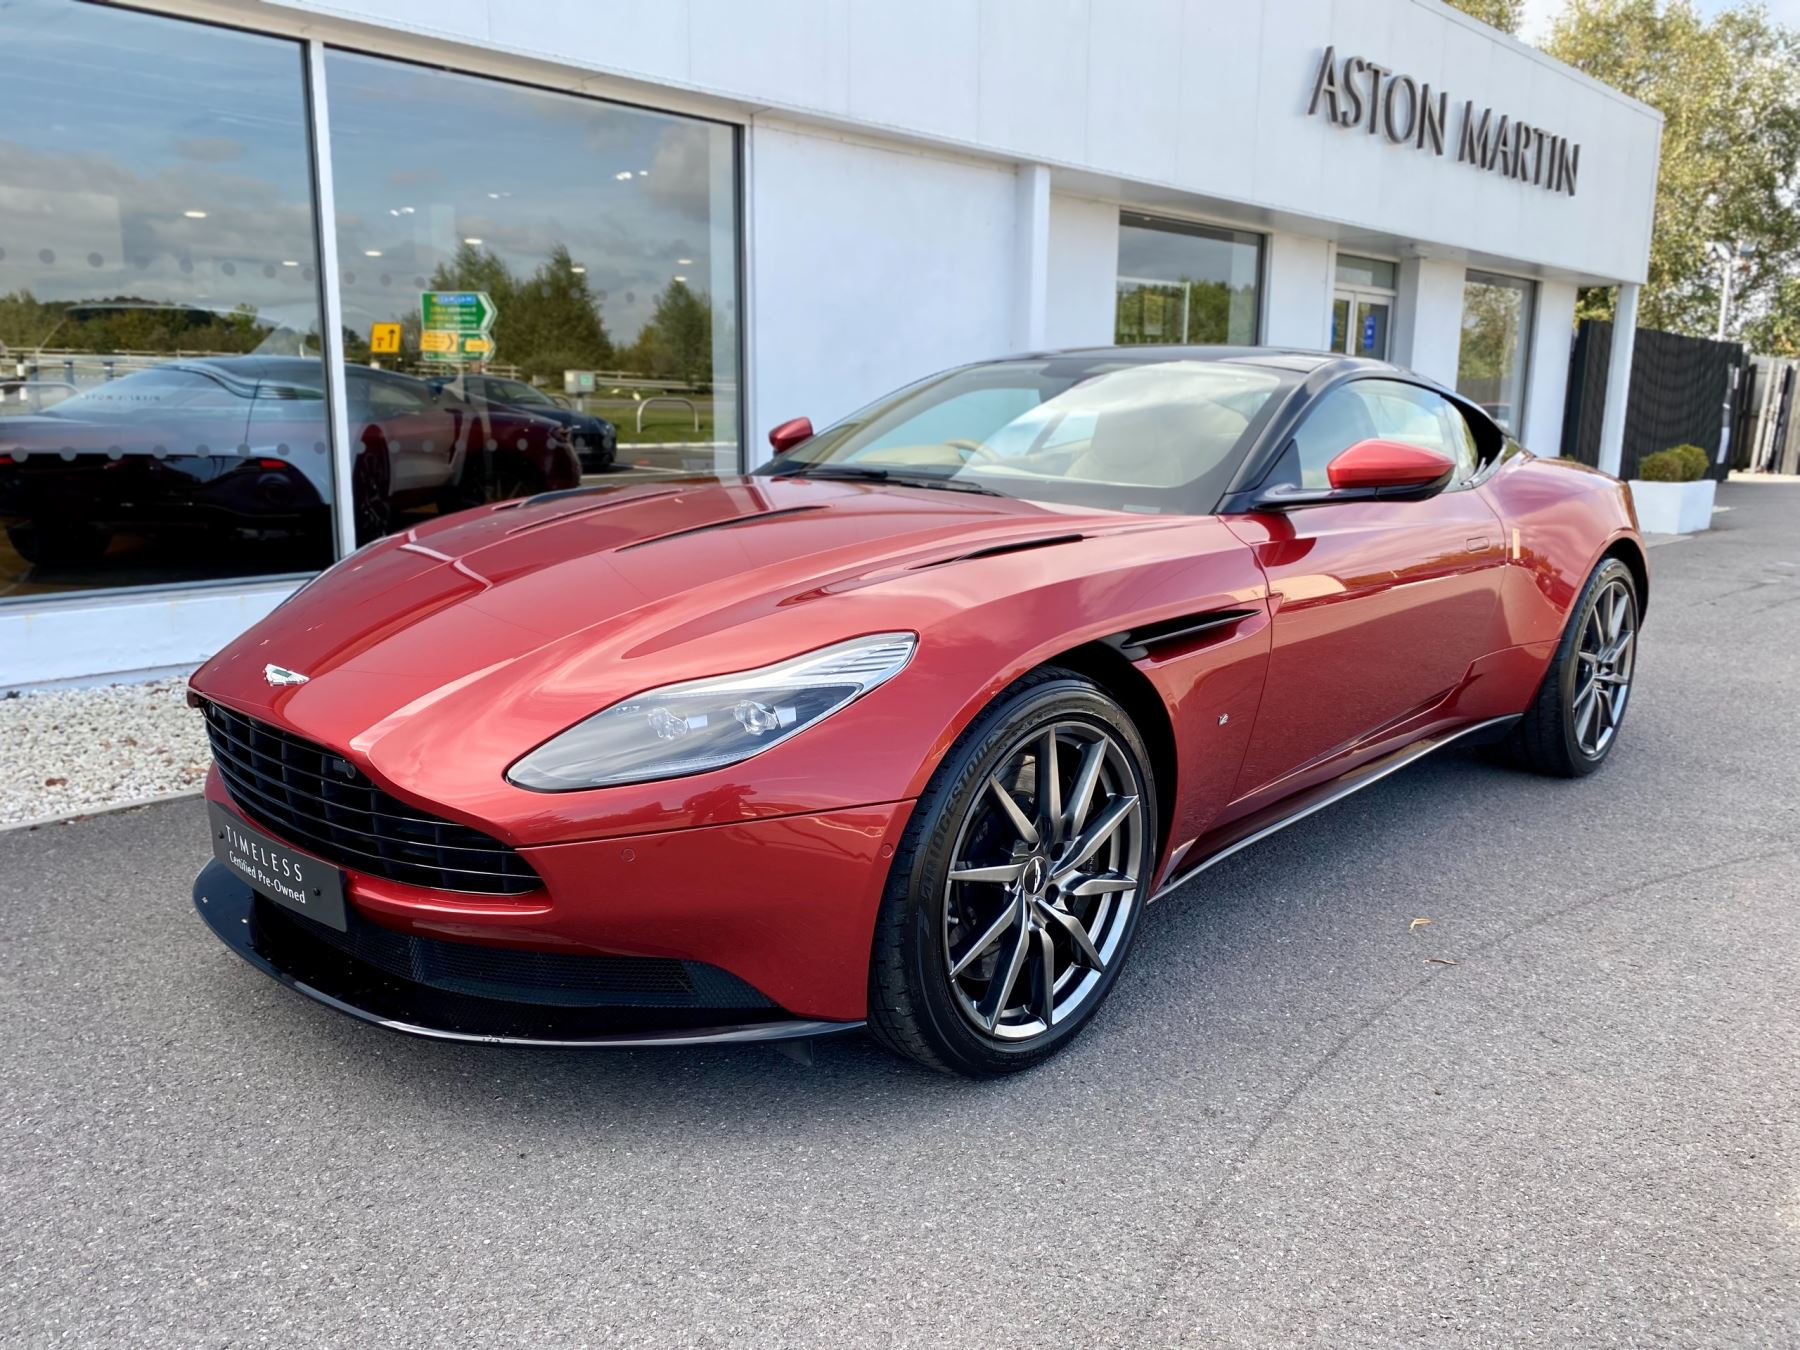 Aston Martin DB11 V12 Launch Edition Coupe. Bang & Olufsen Beosound Audio. Black brake calipers. Ventilated Seats image 3